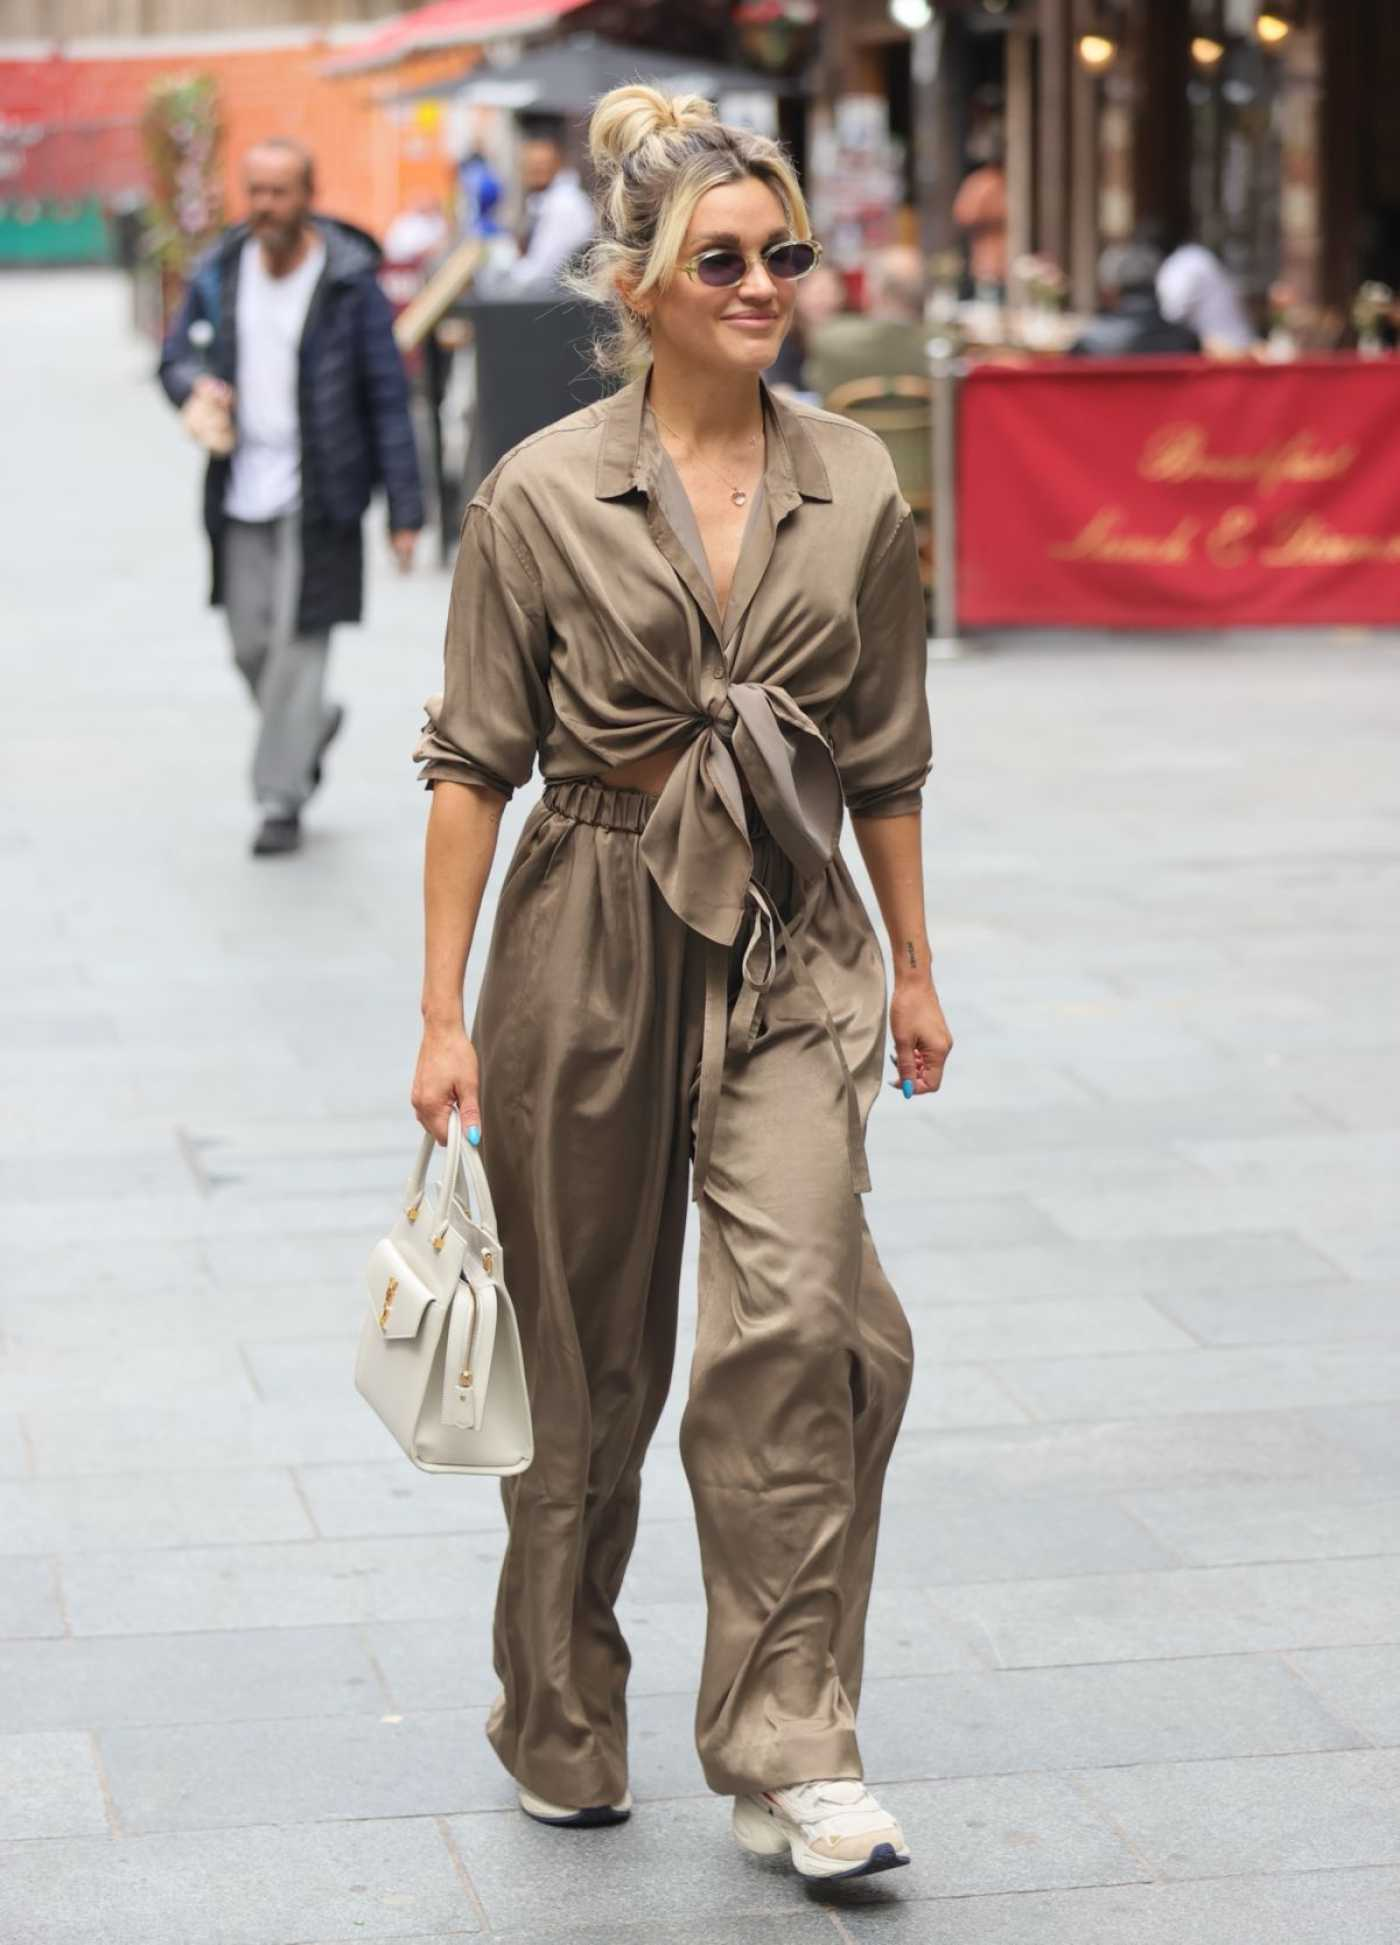 Ashley Roberts in a Tan Suit Leaves the Heart Radio in London 07/15/2021